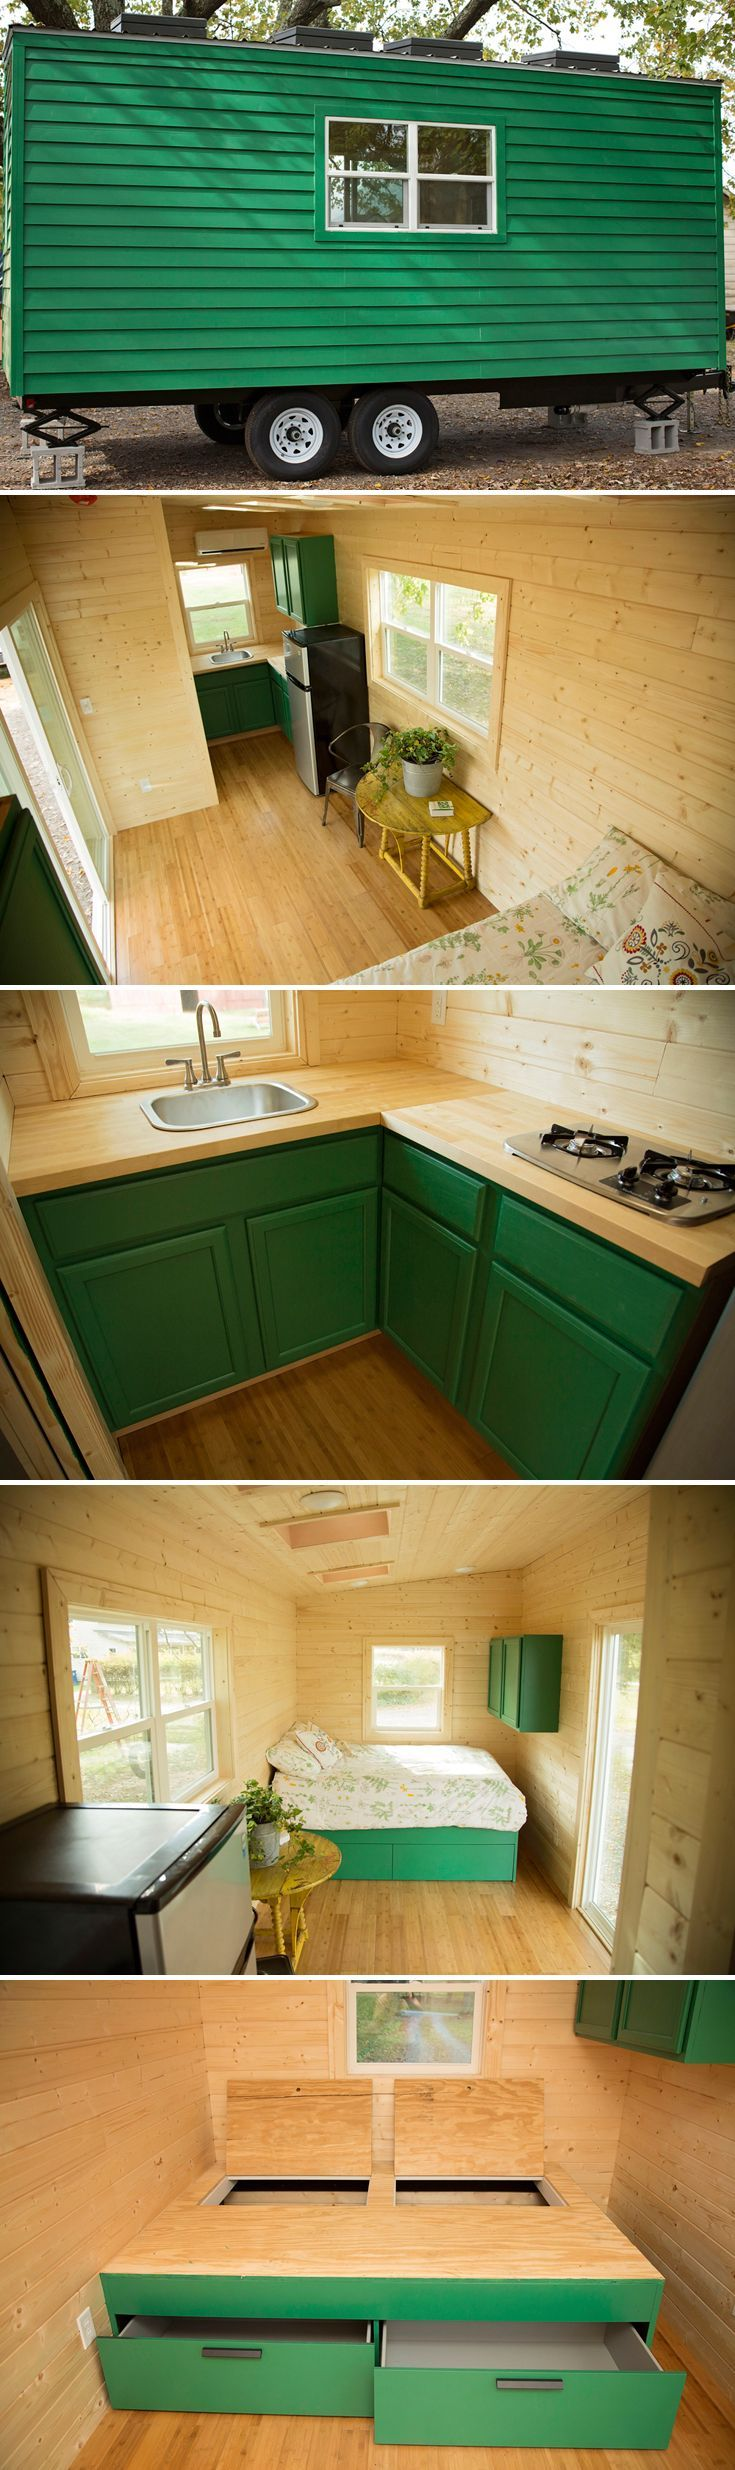 Best 25 House on wheels ideas on Pinterest Tiny house on wheels